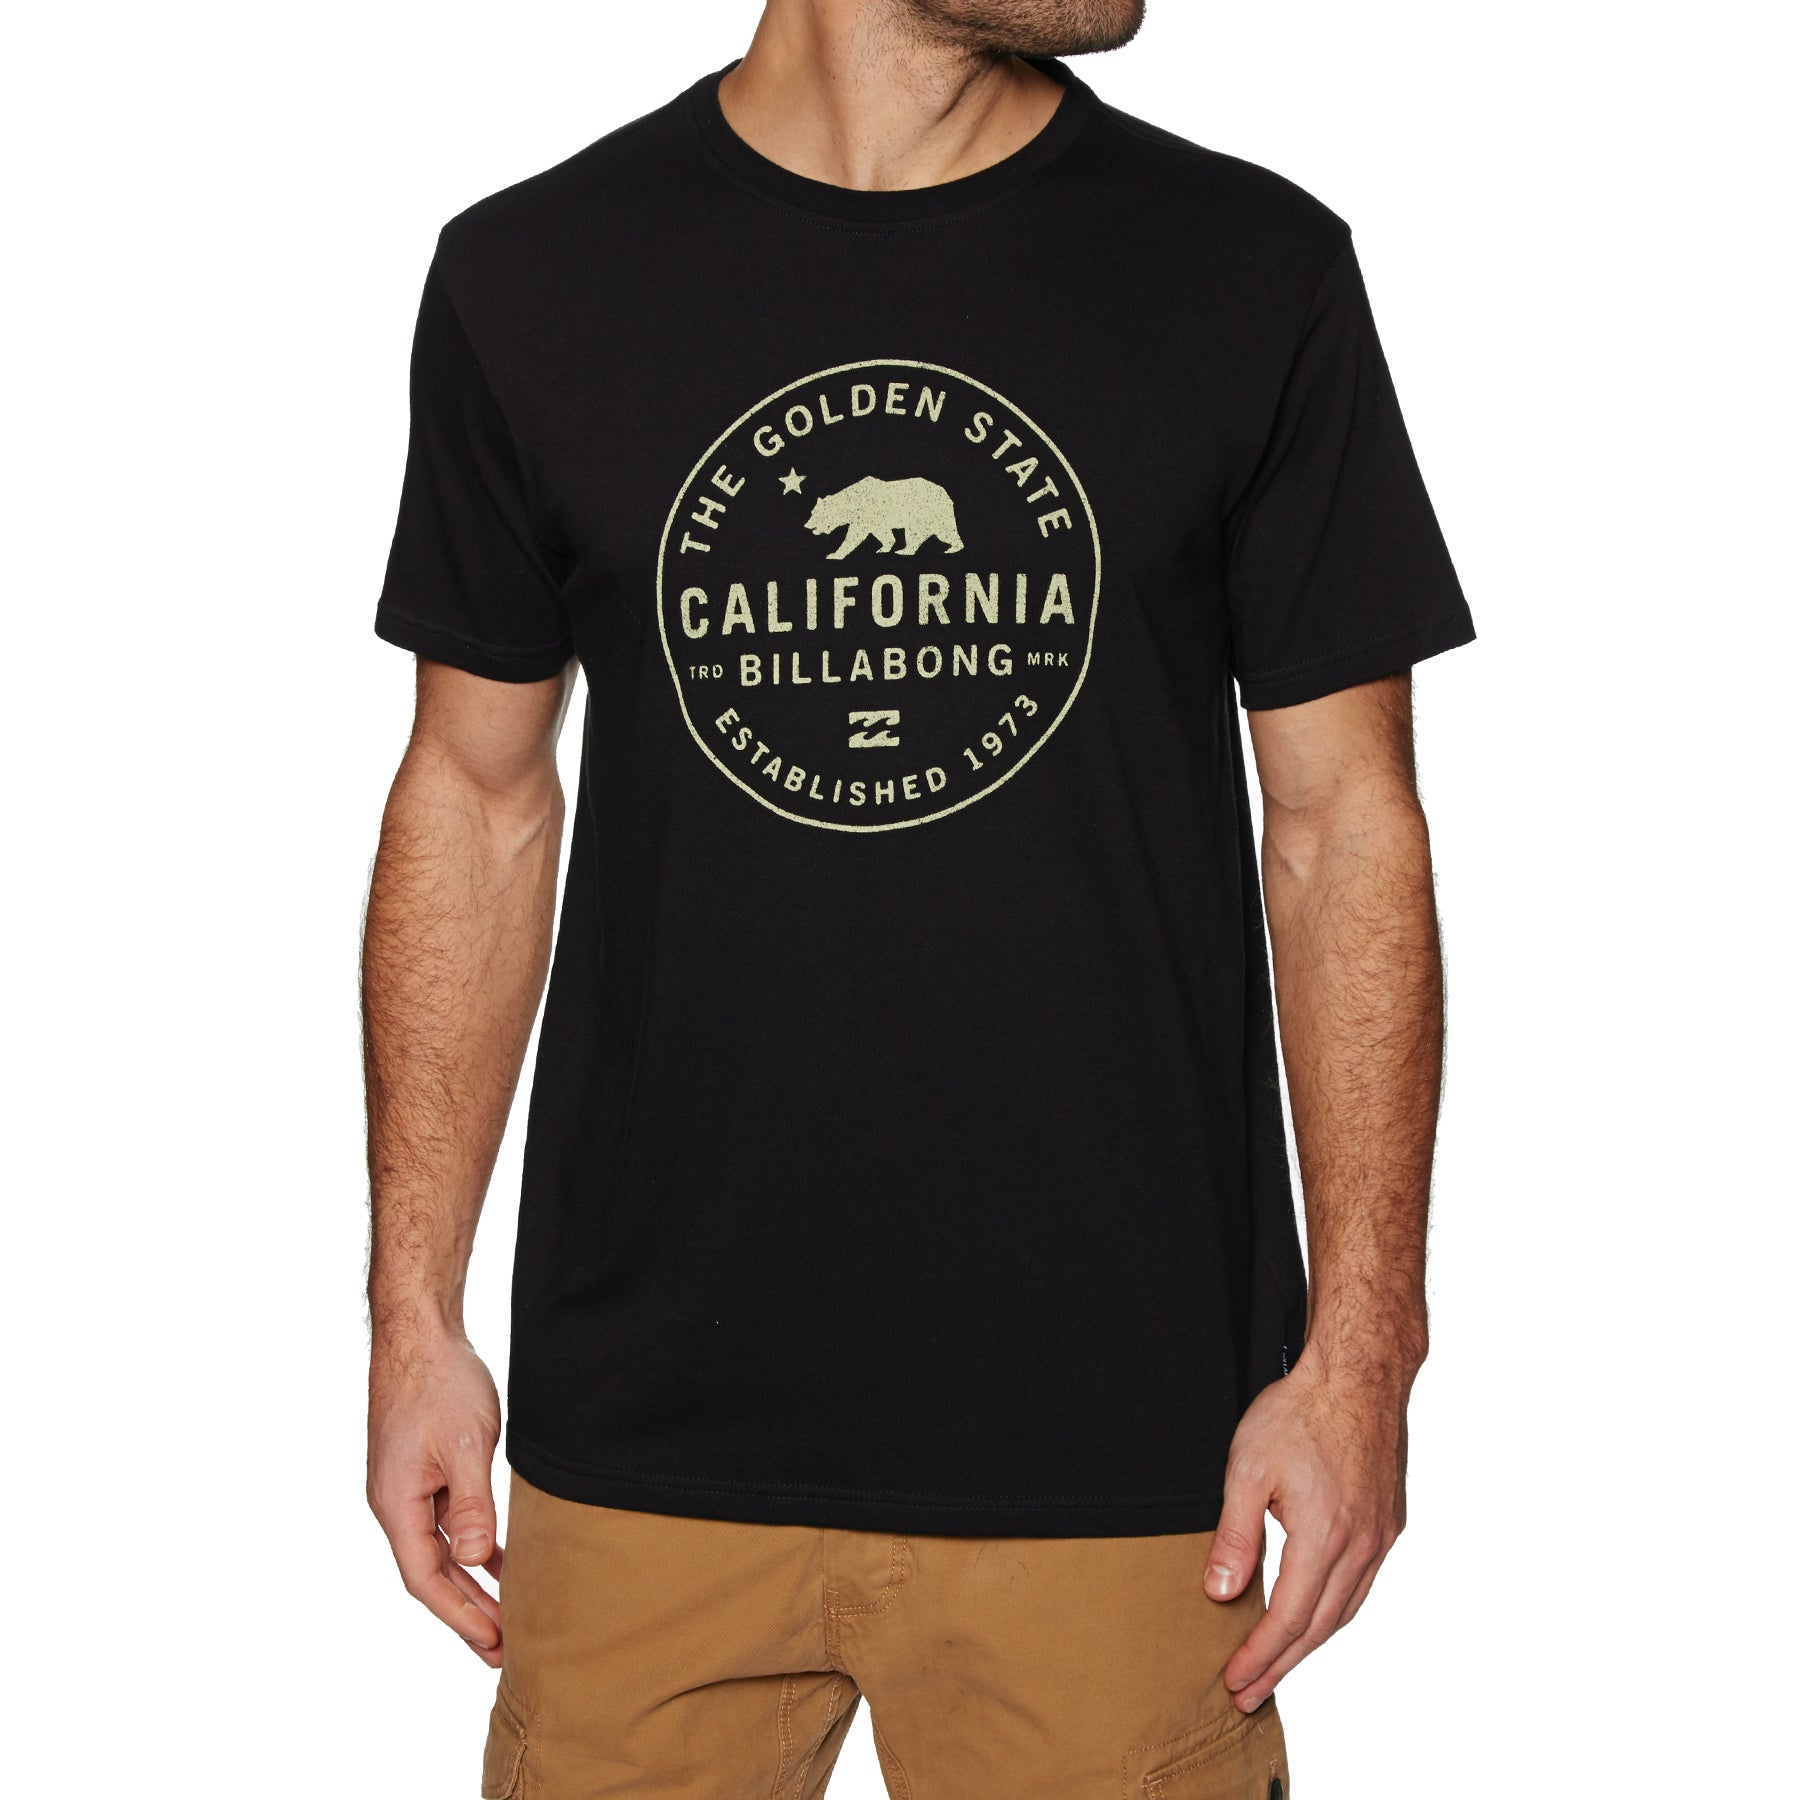 Billabong Golden State Short Sleeve T-Shirt